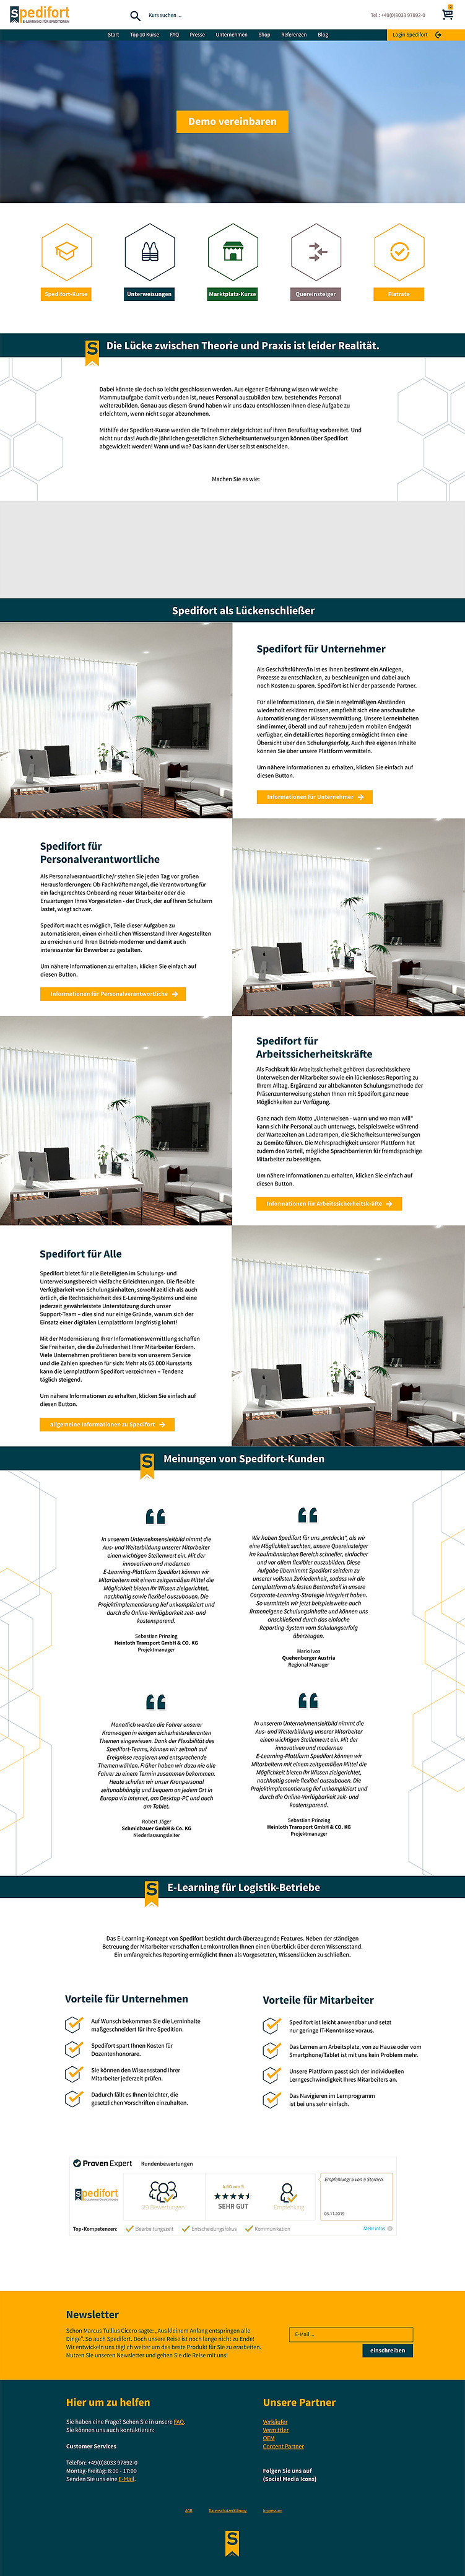 Spedifort Webdesign